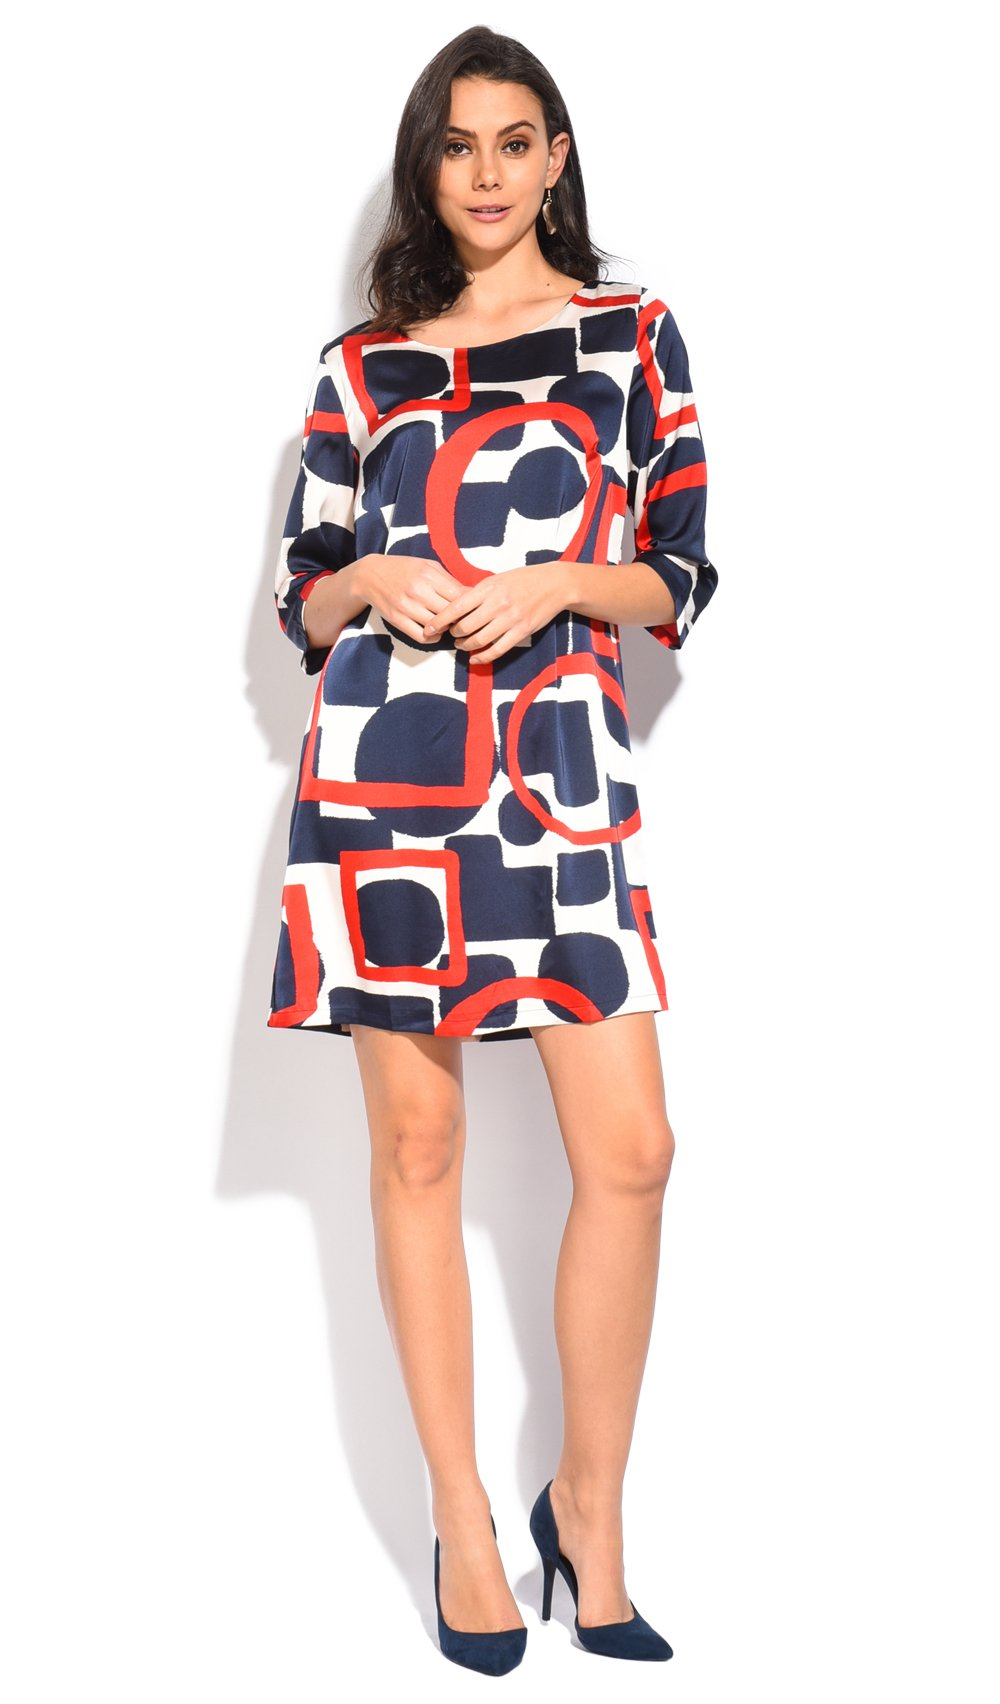 SHORT DRESS WITH TRI-COLORS PRINTED PATTERN AND HALF-SLEEVES